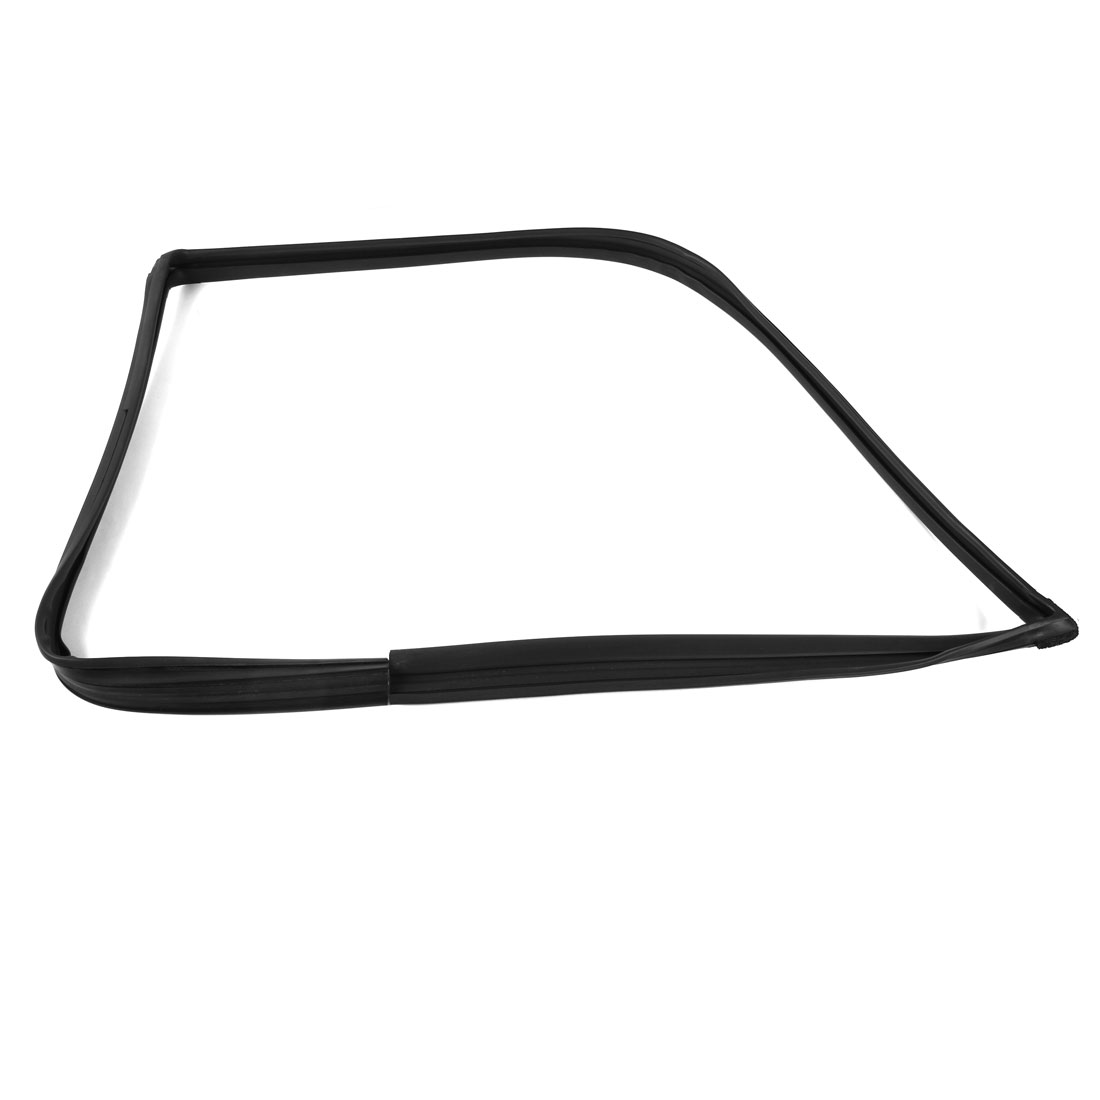 Car Left Side Front Door Glass Run Channel Weatherstrip Seal 72275-S84-A01 for Honda